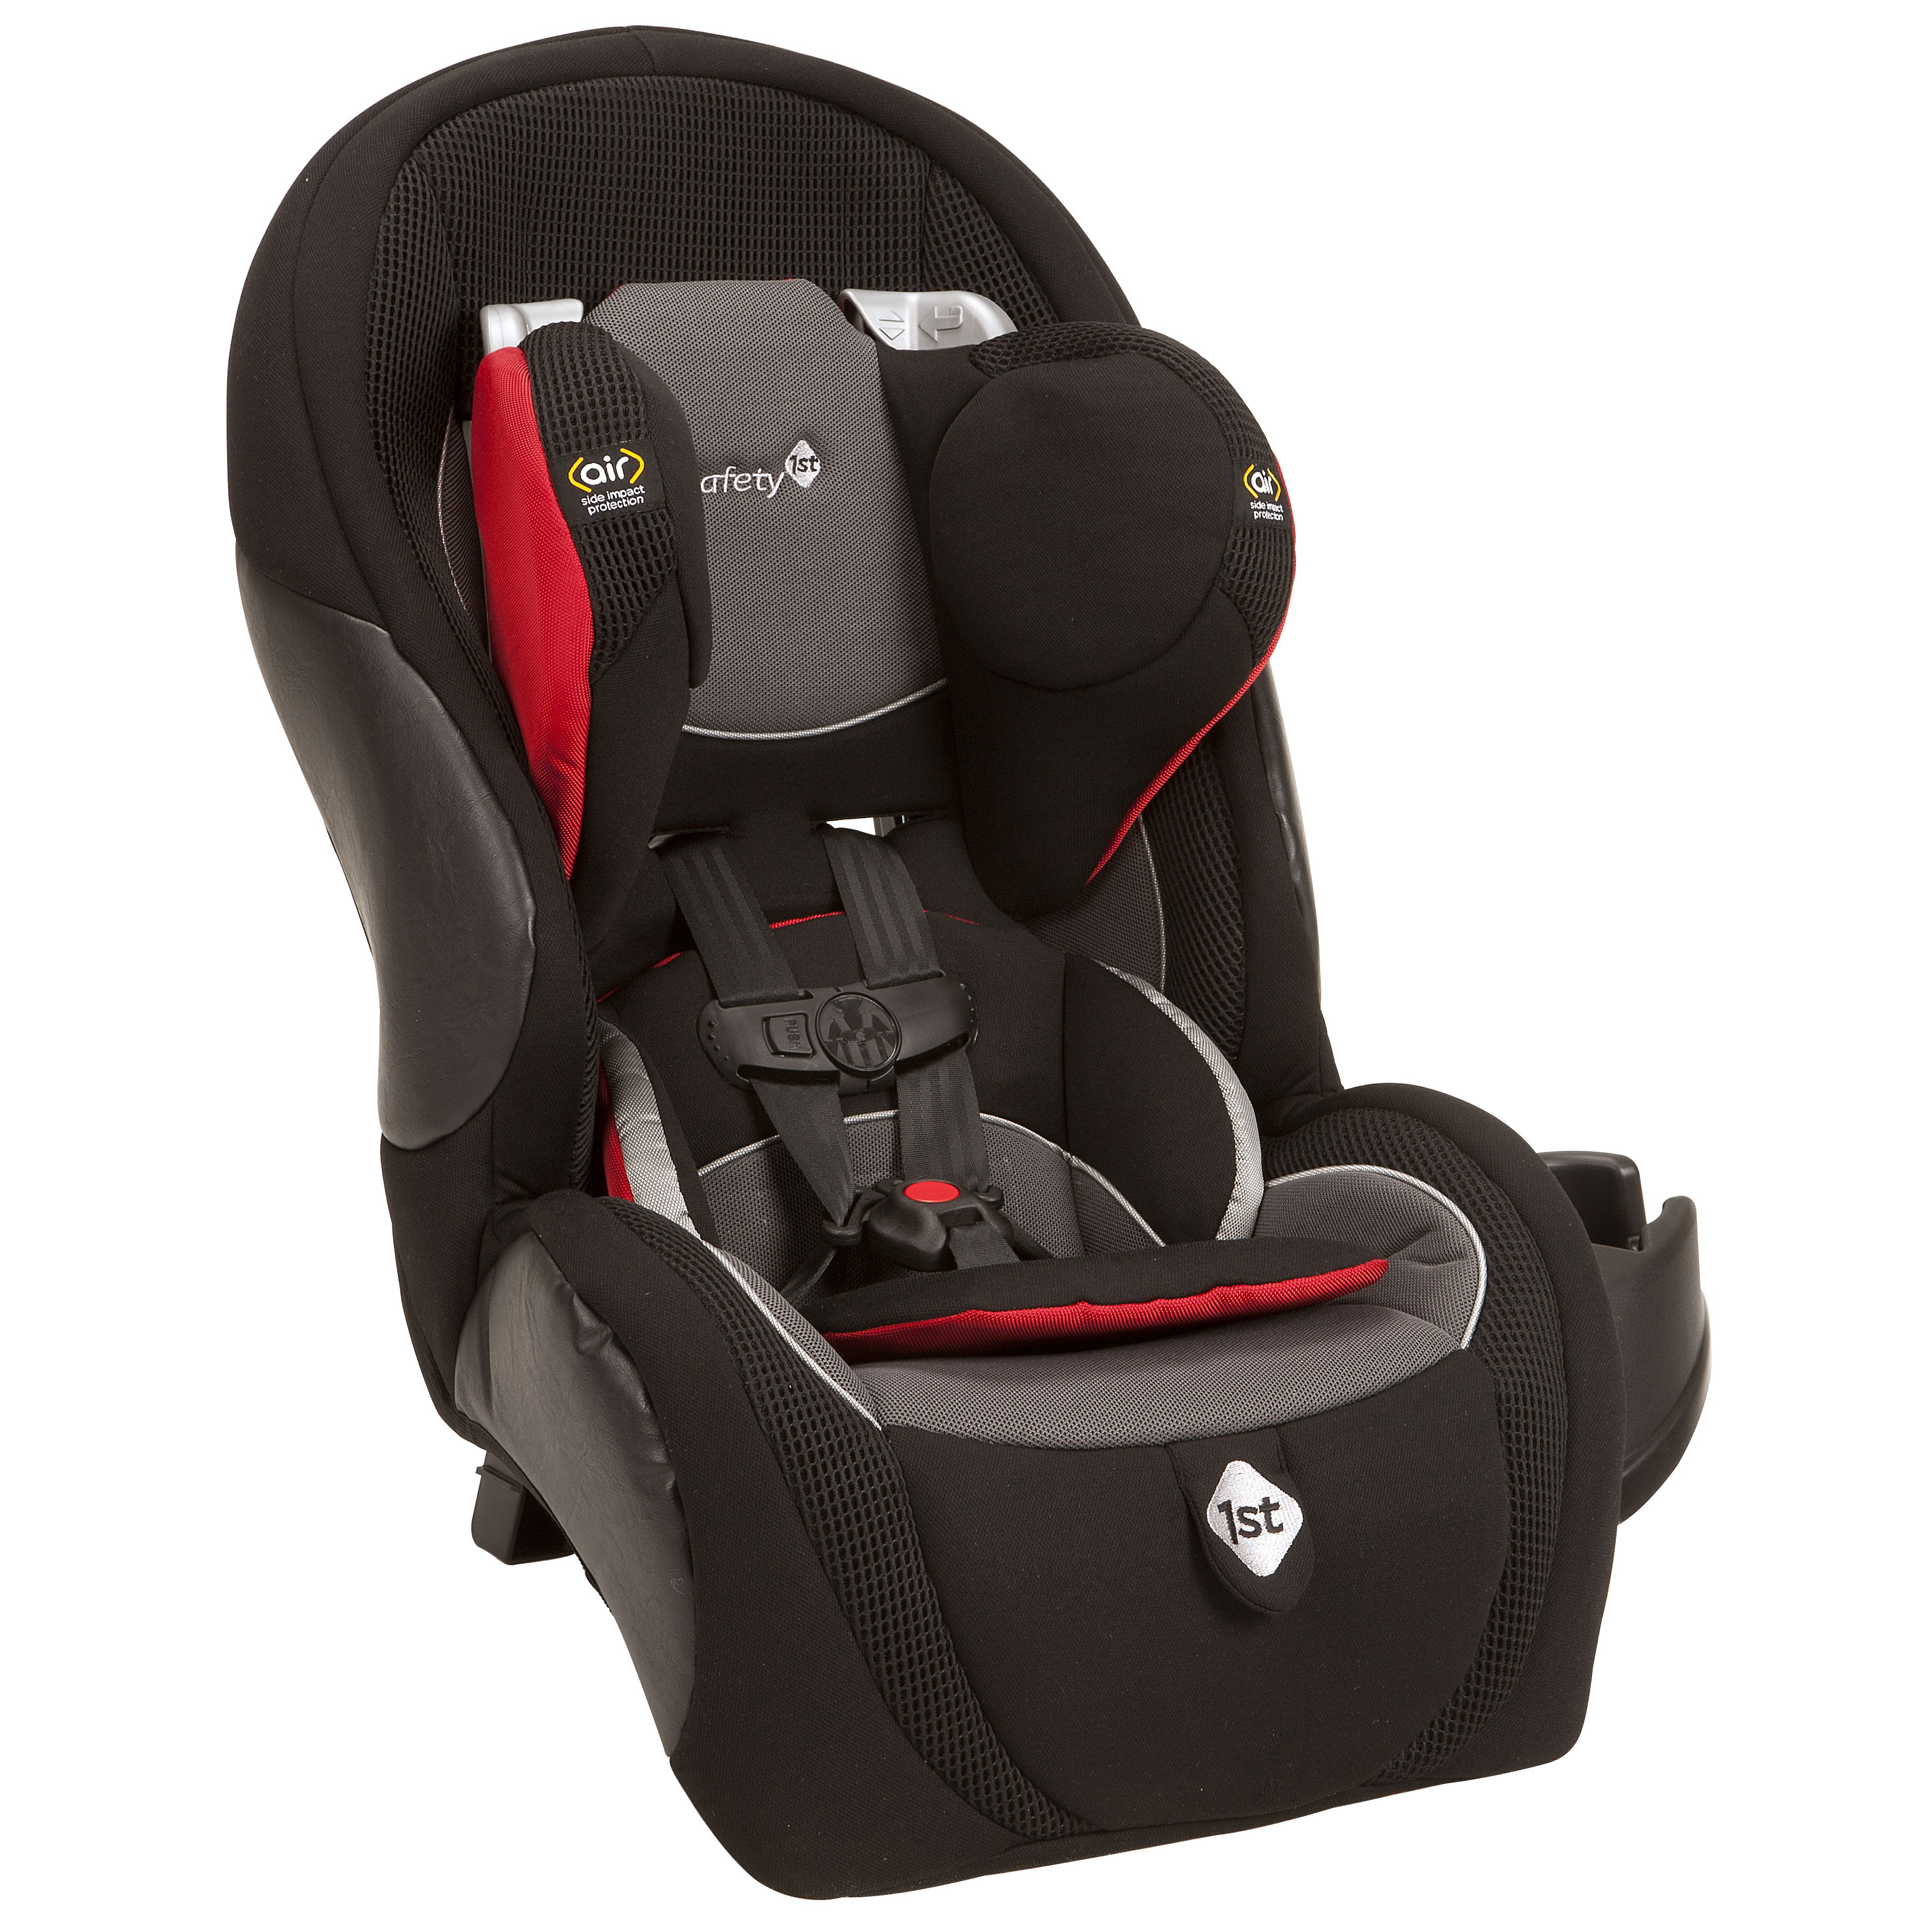 Safety 1st Brings Air Protect Side Impact Protection To Your Family With The Complete 65 Convertible Car Seat In Stylish Helios Fashion